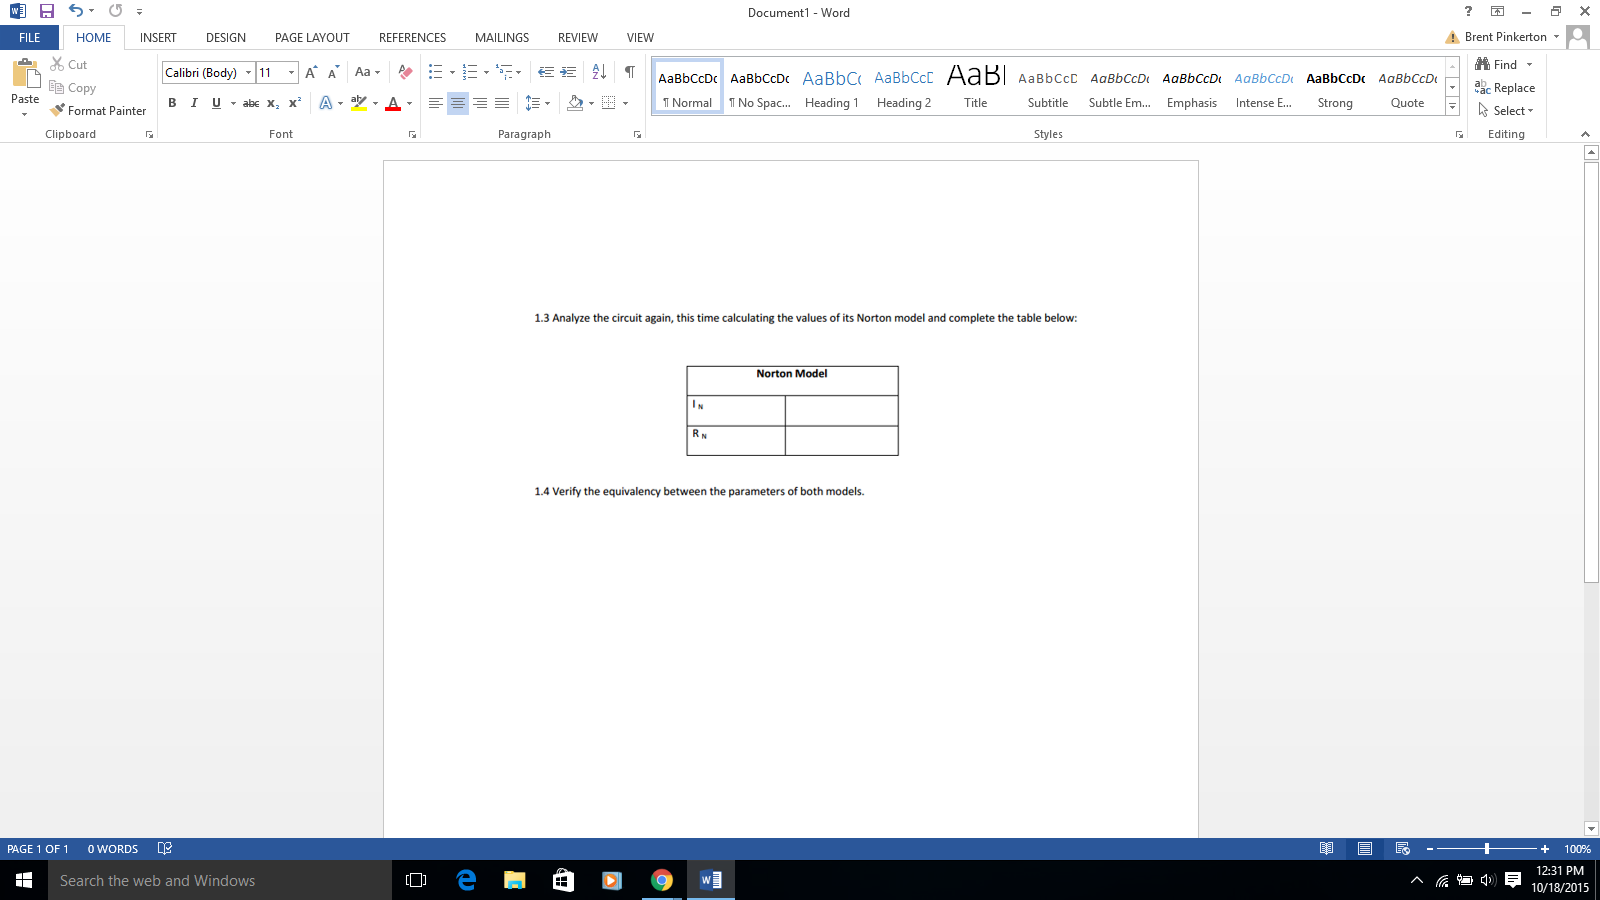 Document1 word picture tools brent pinkerton chegg question document1 word picture tools brent pinkerton find replace select editing file home inser baditri Choice Image